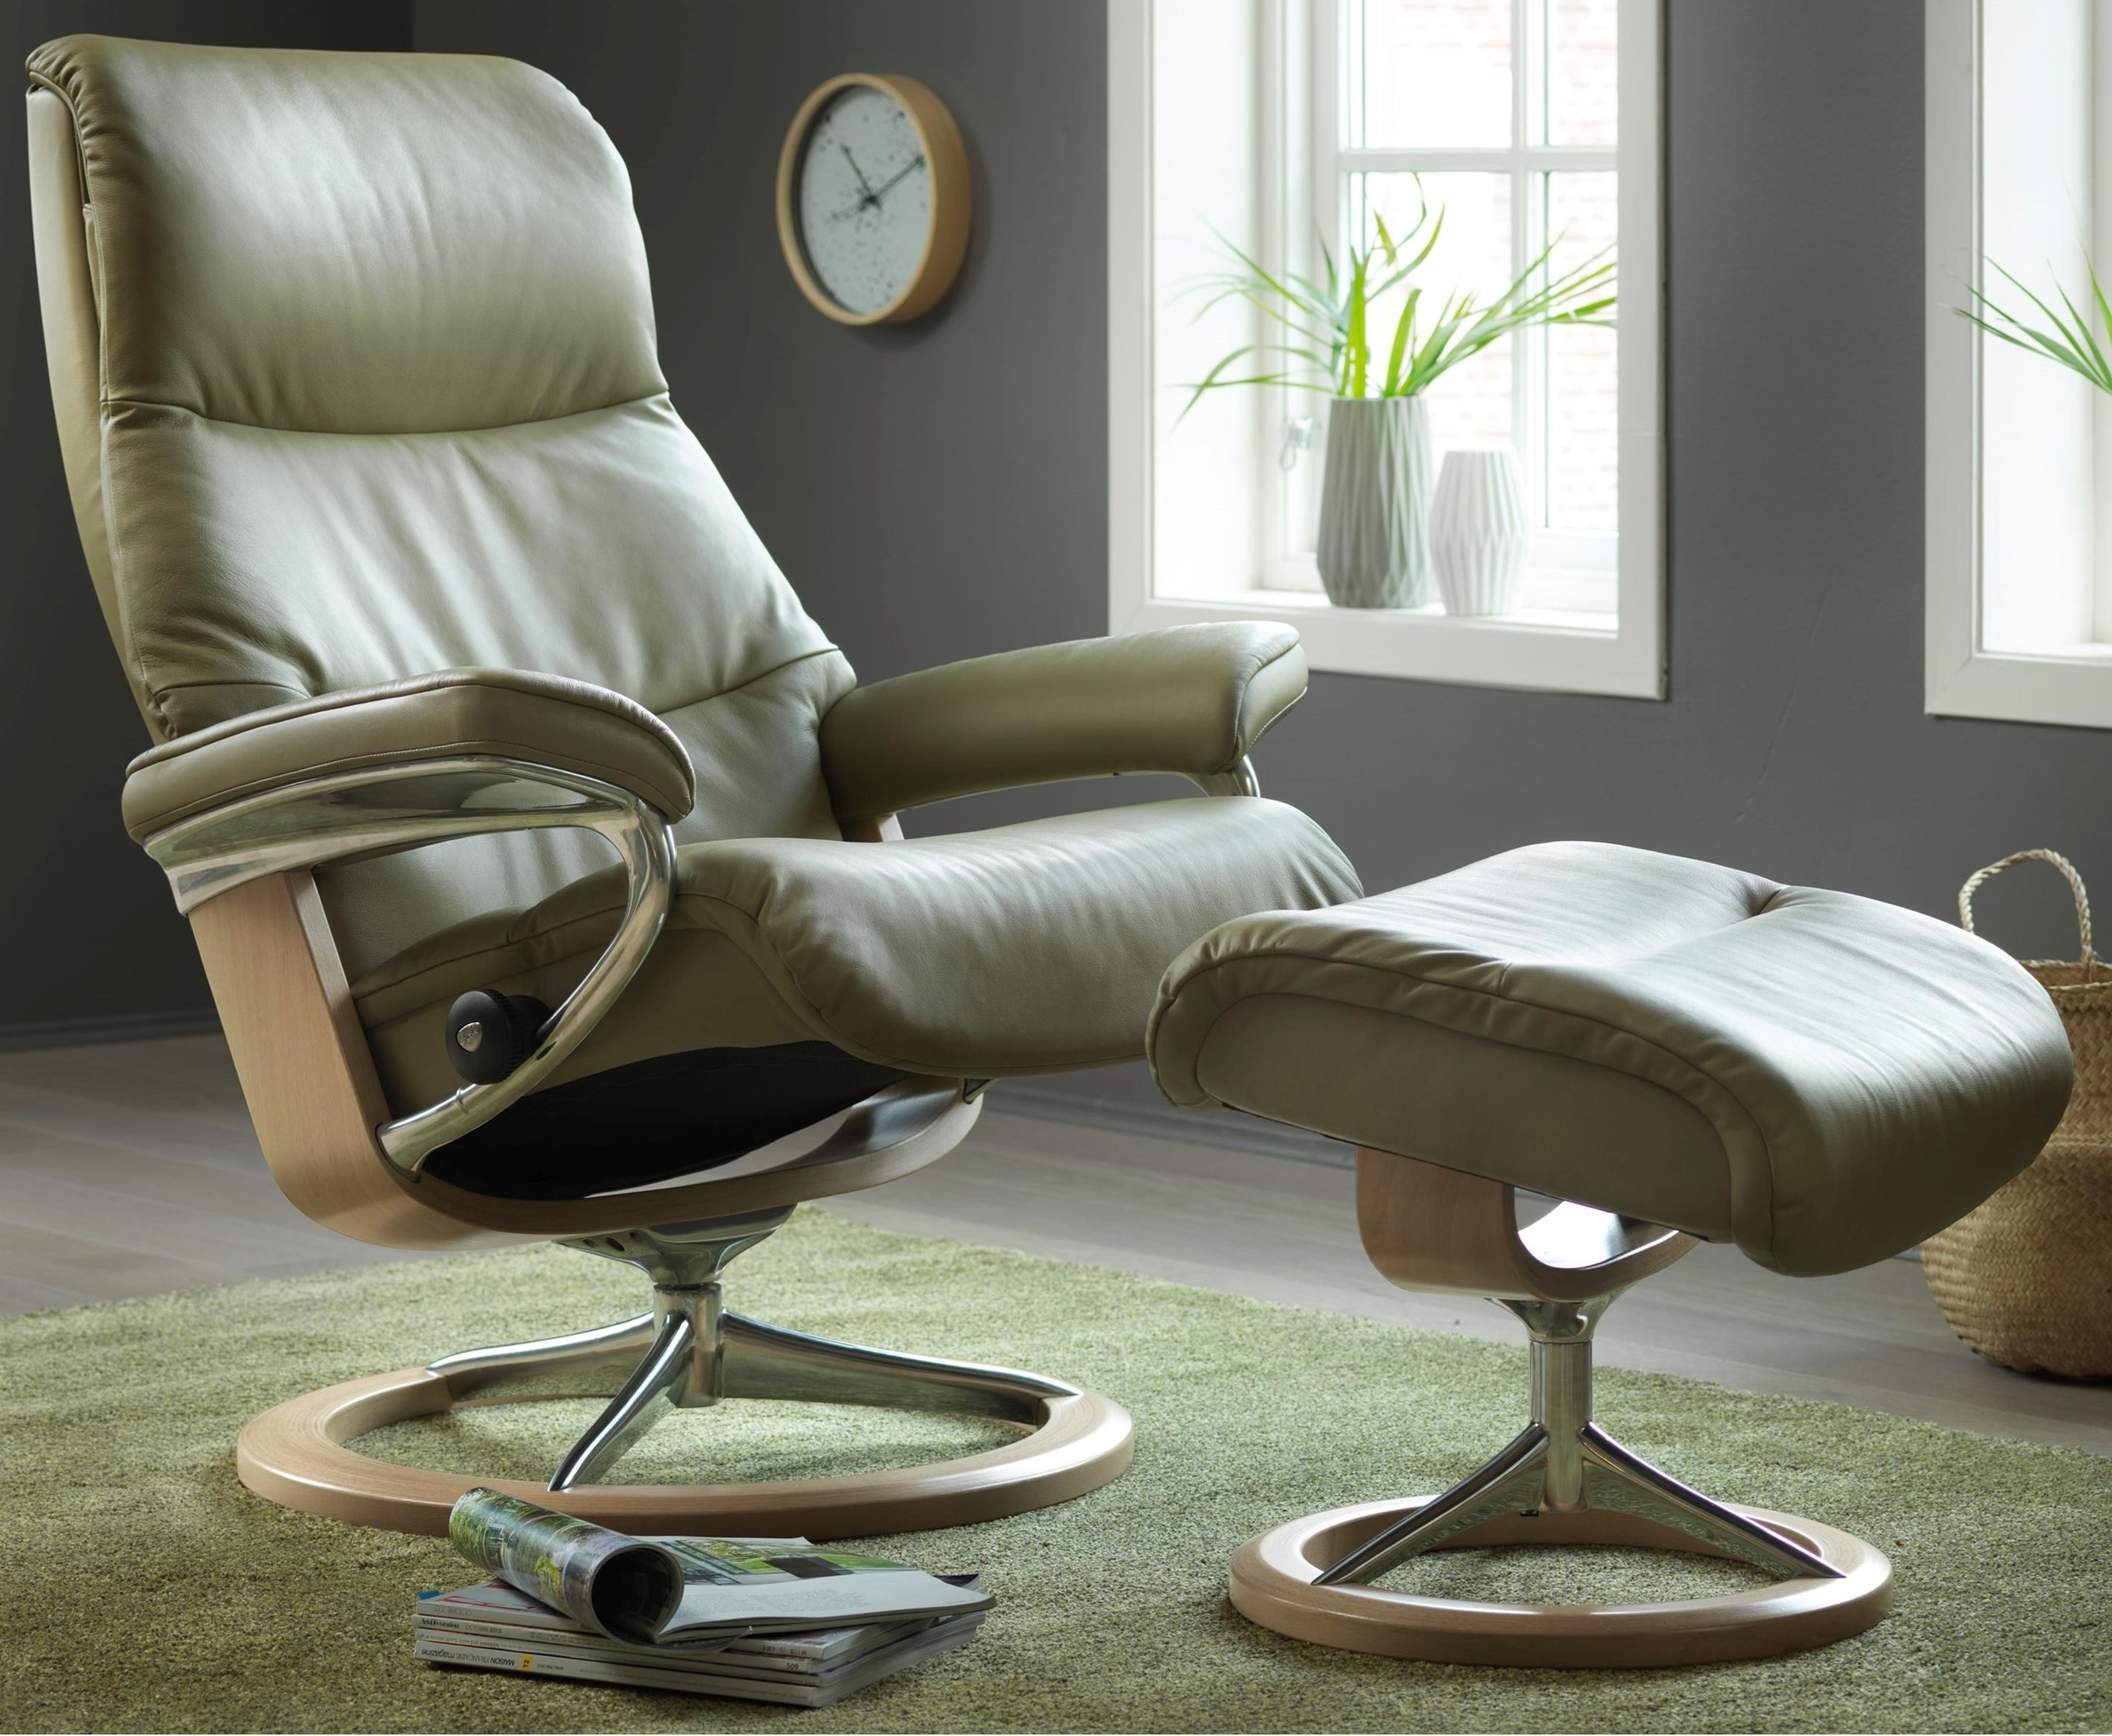 Stresless Stressless View Medium Reclining Chair Ottoman With Signature